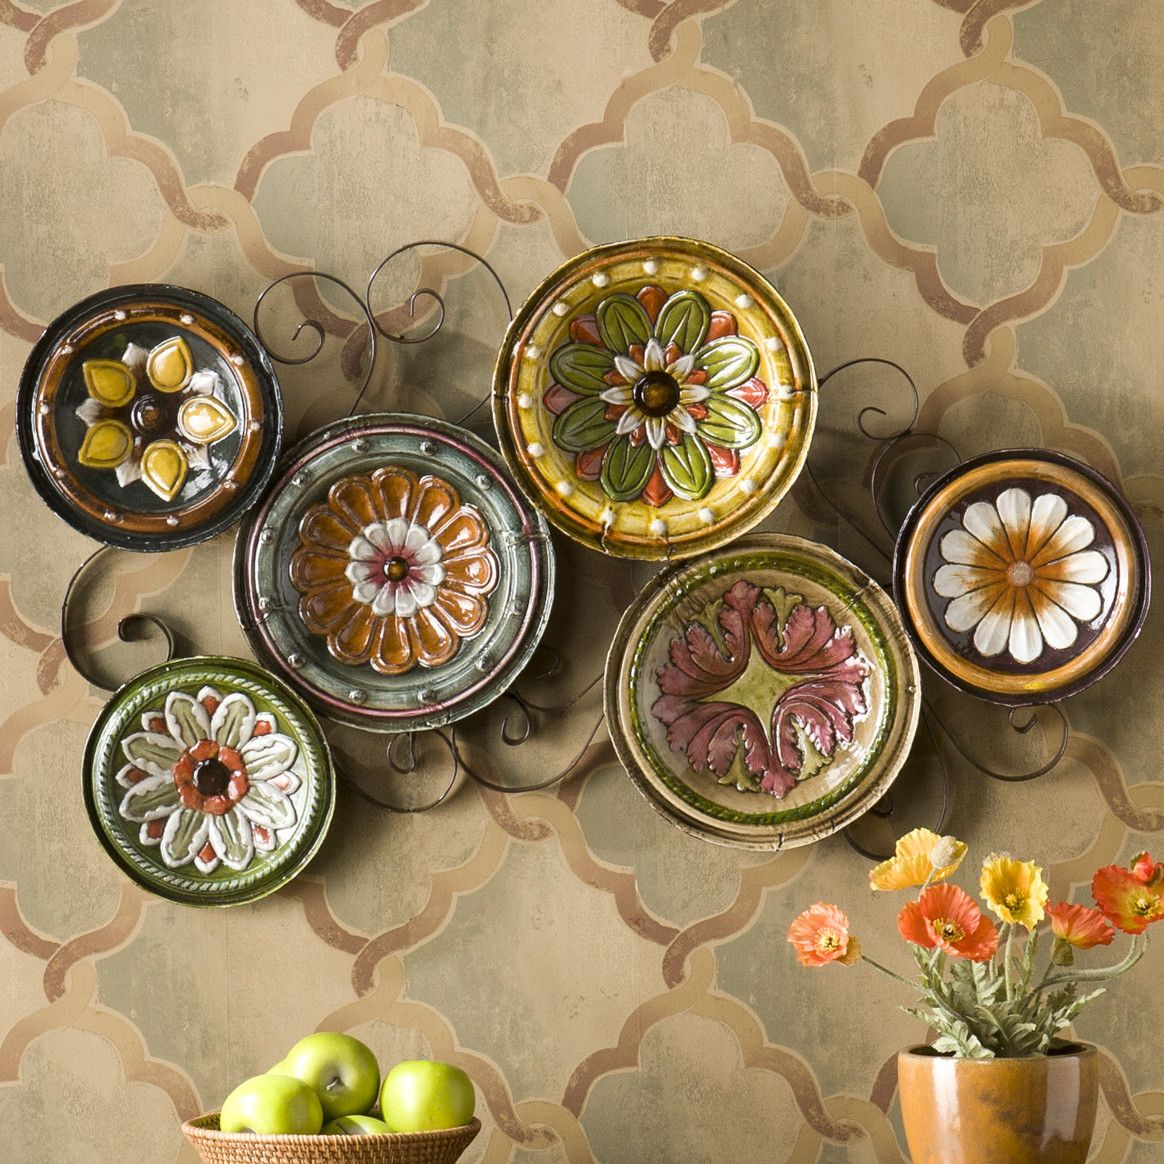 Wildon Home ® Scattered Italian Plates Wall Décor | Things Throughout Scattered Metal Italian Plates Wall Decor (View 2 of 30)